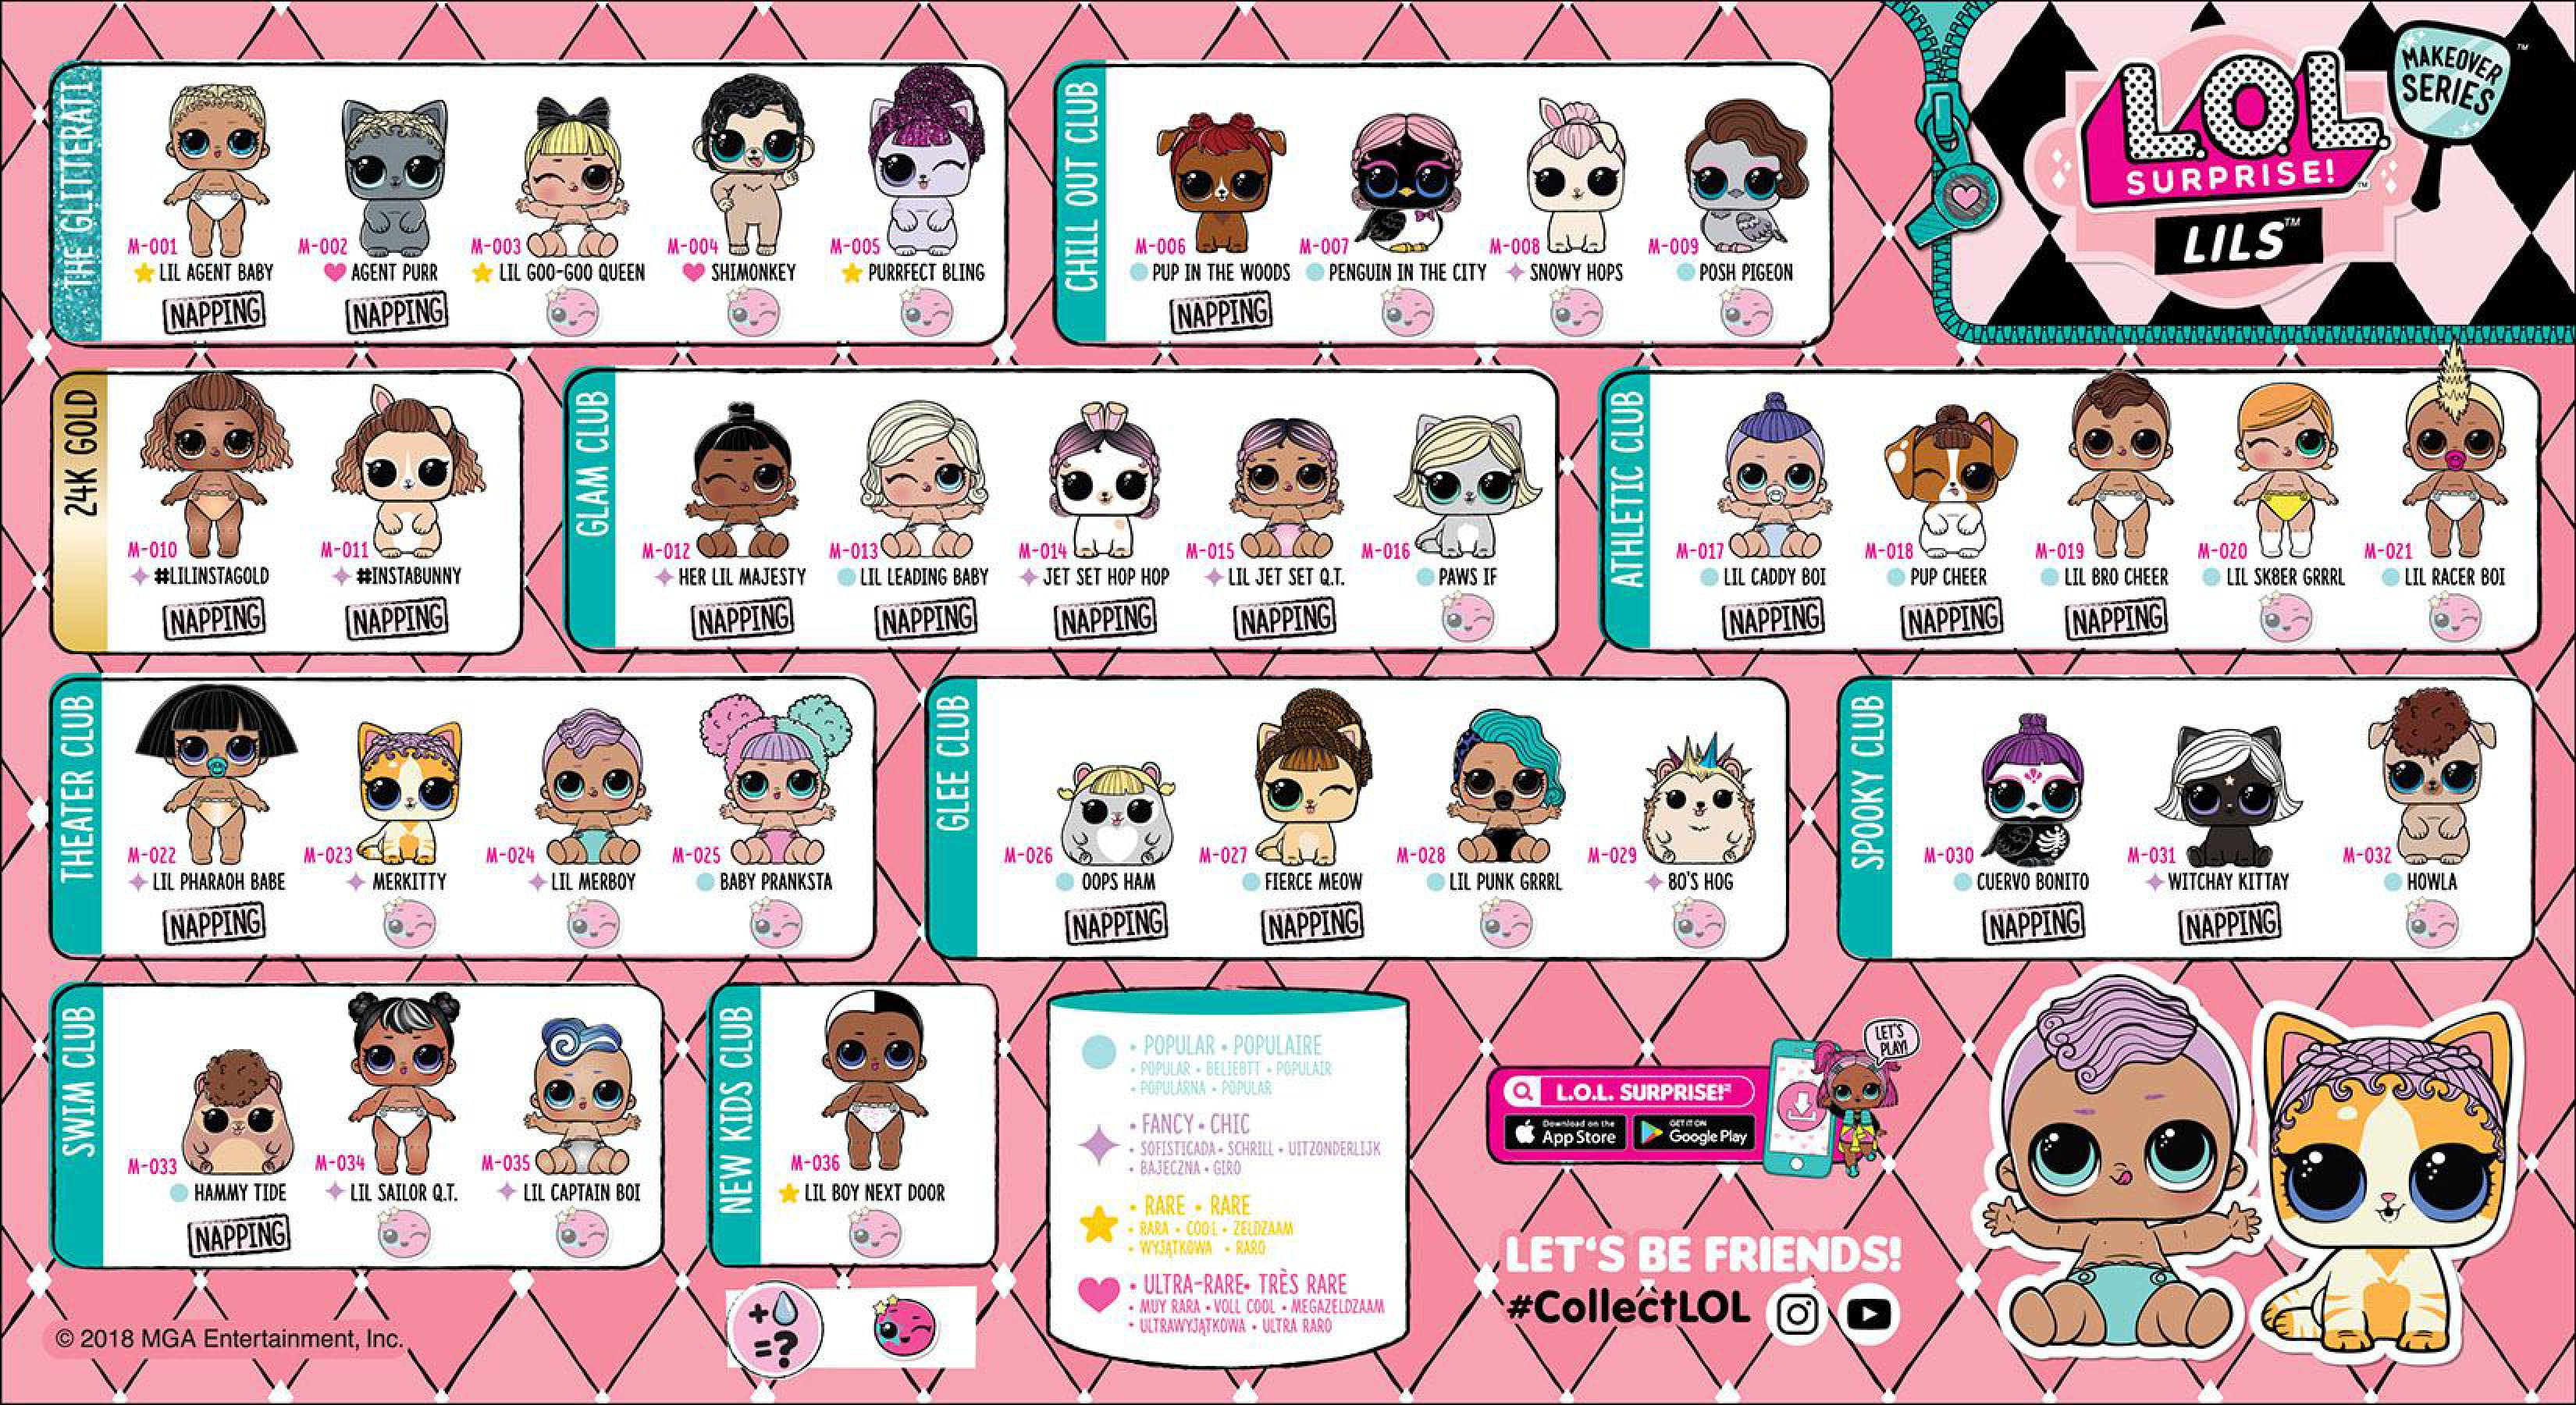 Lol Surprise Makeover Series 5 Wave 2 Collector Guide List Lils Checklist Insert Kids Time